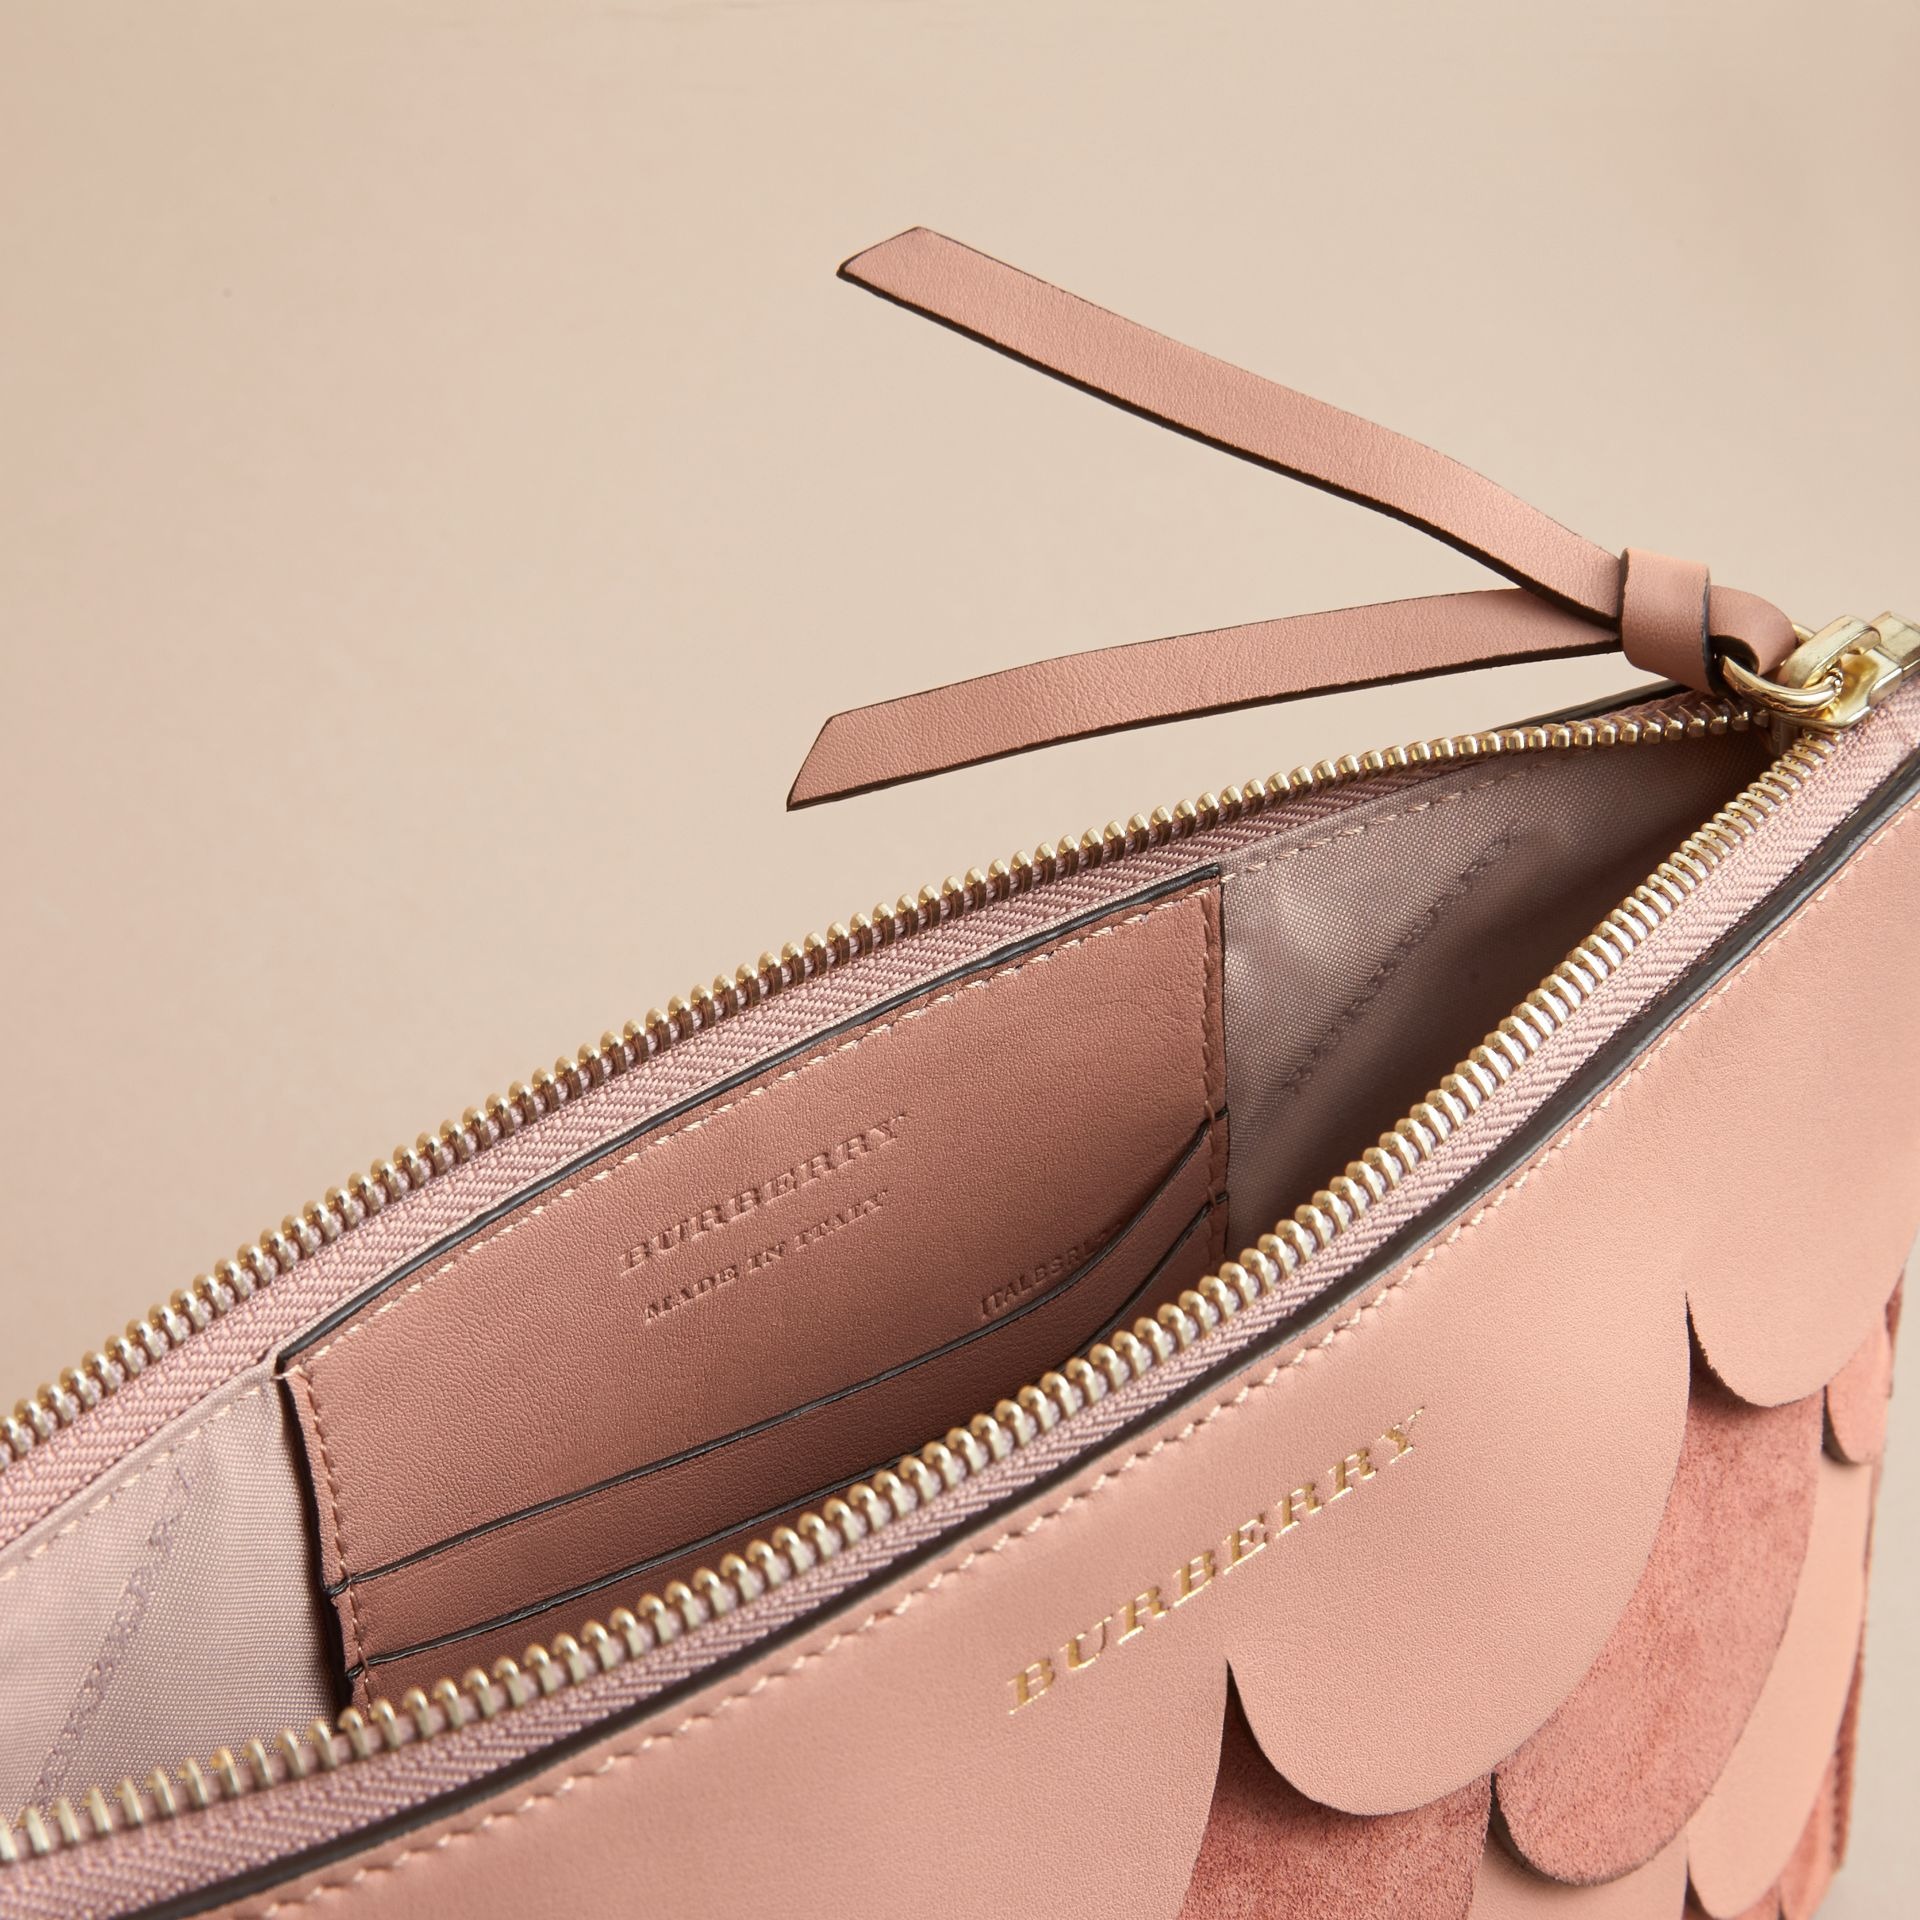 Two-tone Scalloped Leather and Suede Clutch Bag in Ash Rose - Women | Burberry - gallery image 6